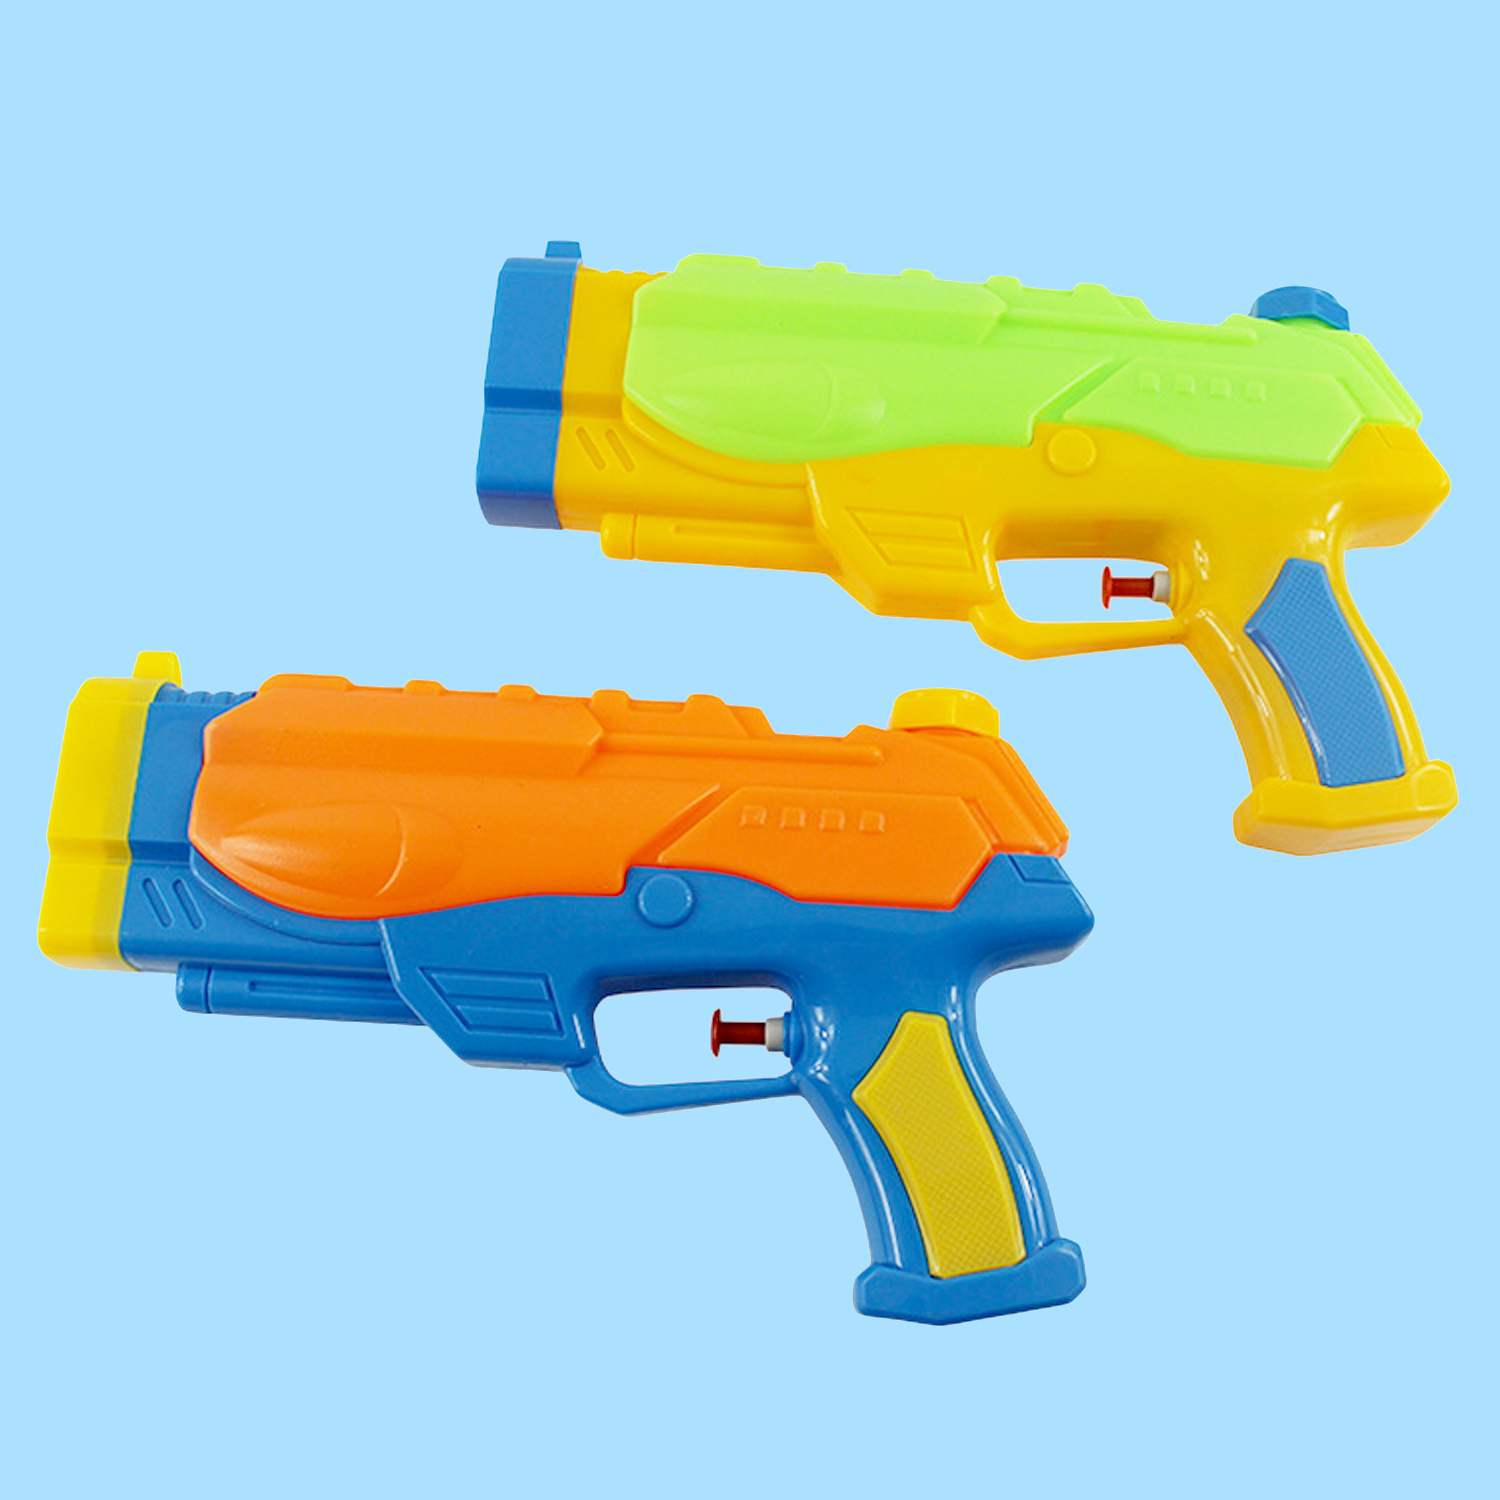 2 High Pressure Large Capacity Super Soaker Water Gun Pistols Toy Outdoor Sports Games Guns Toys Summer Beach Pool Squirt Toy